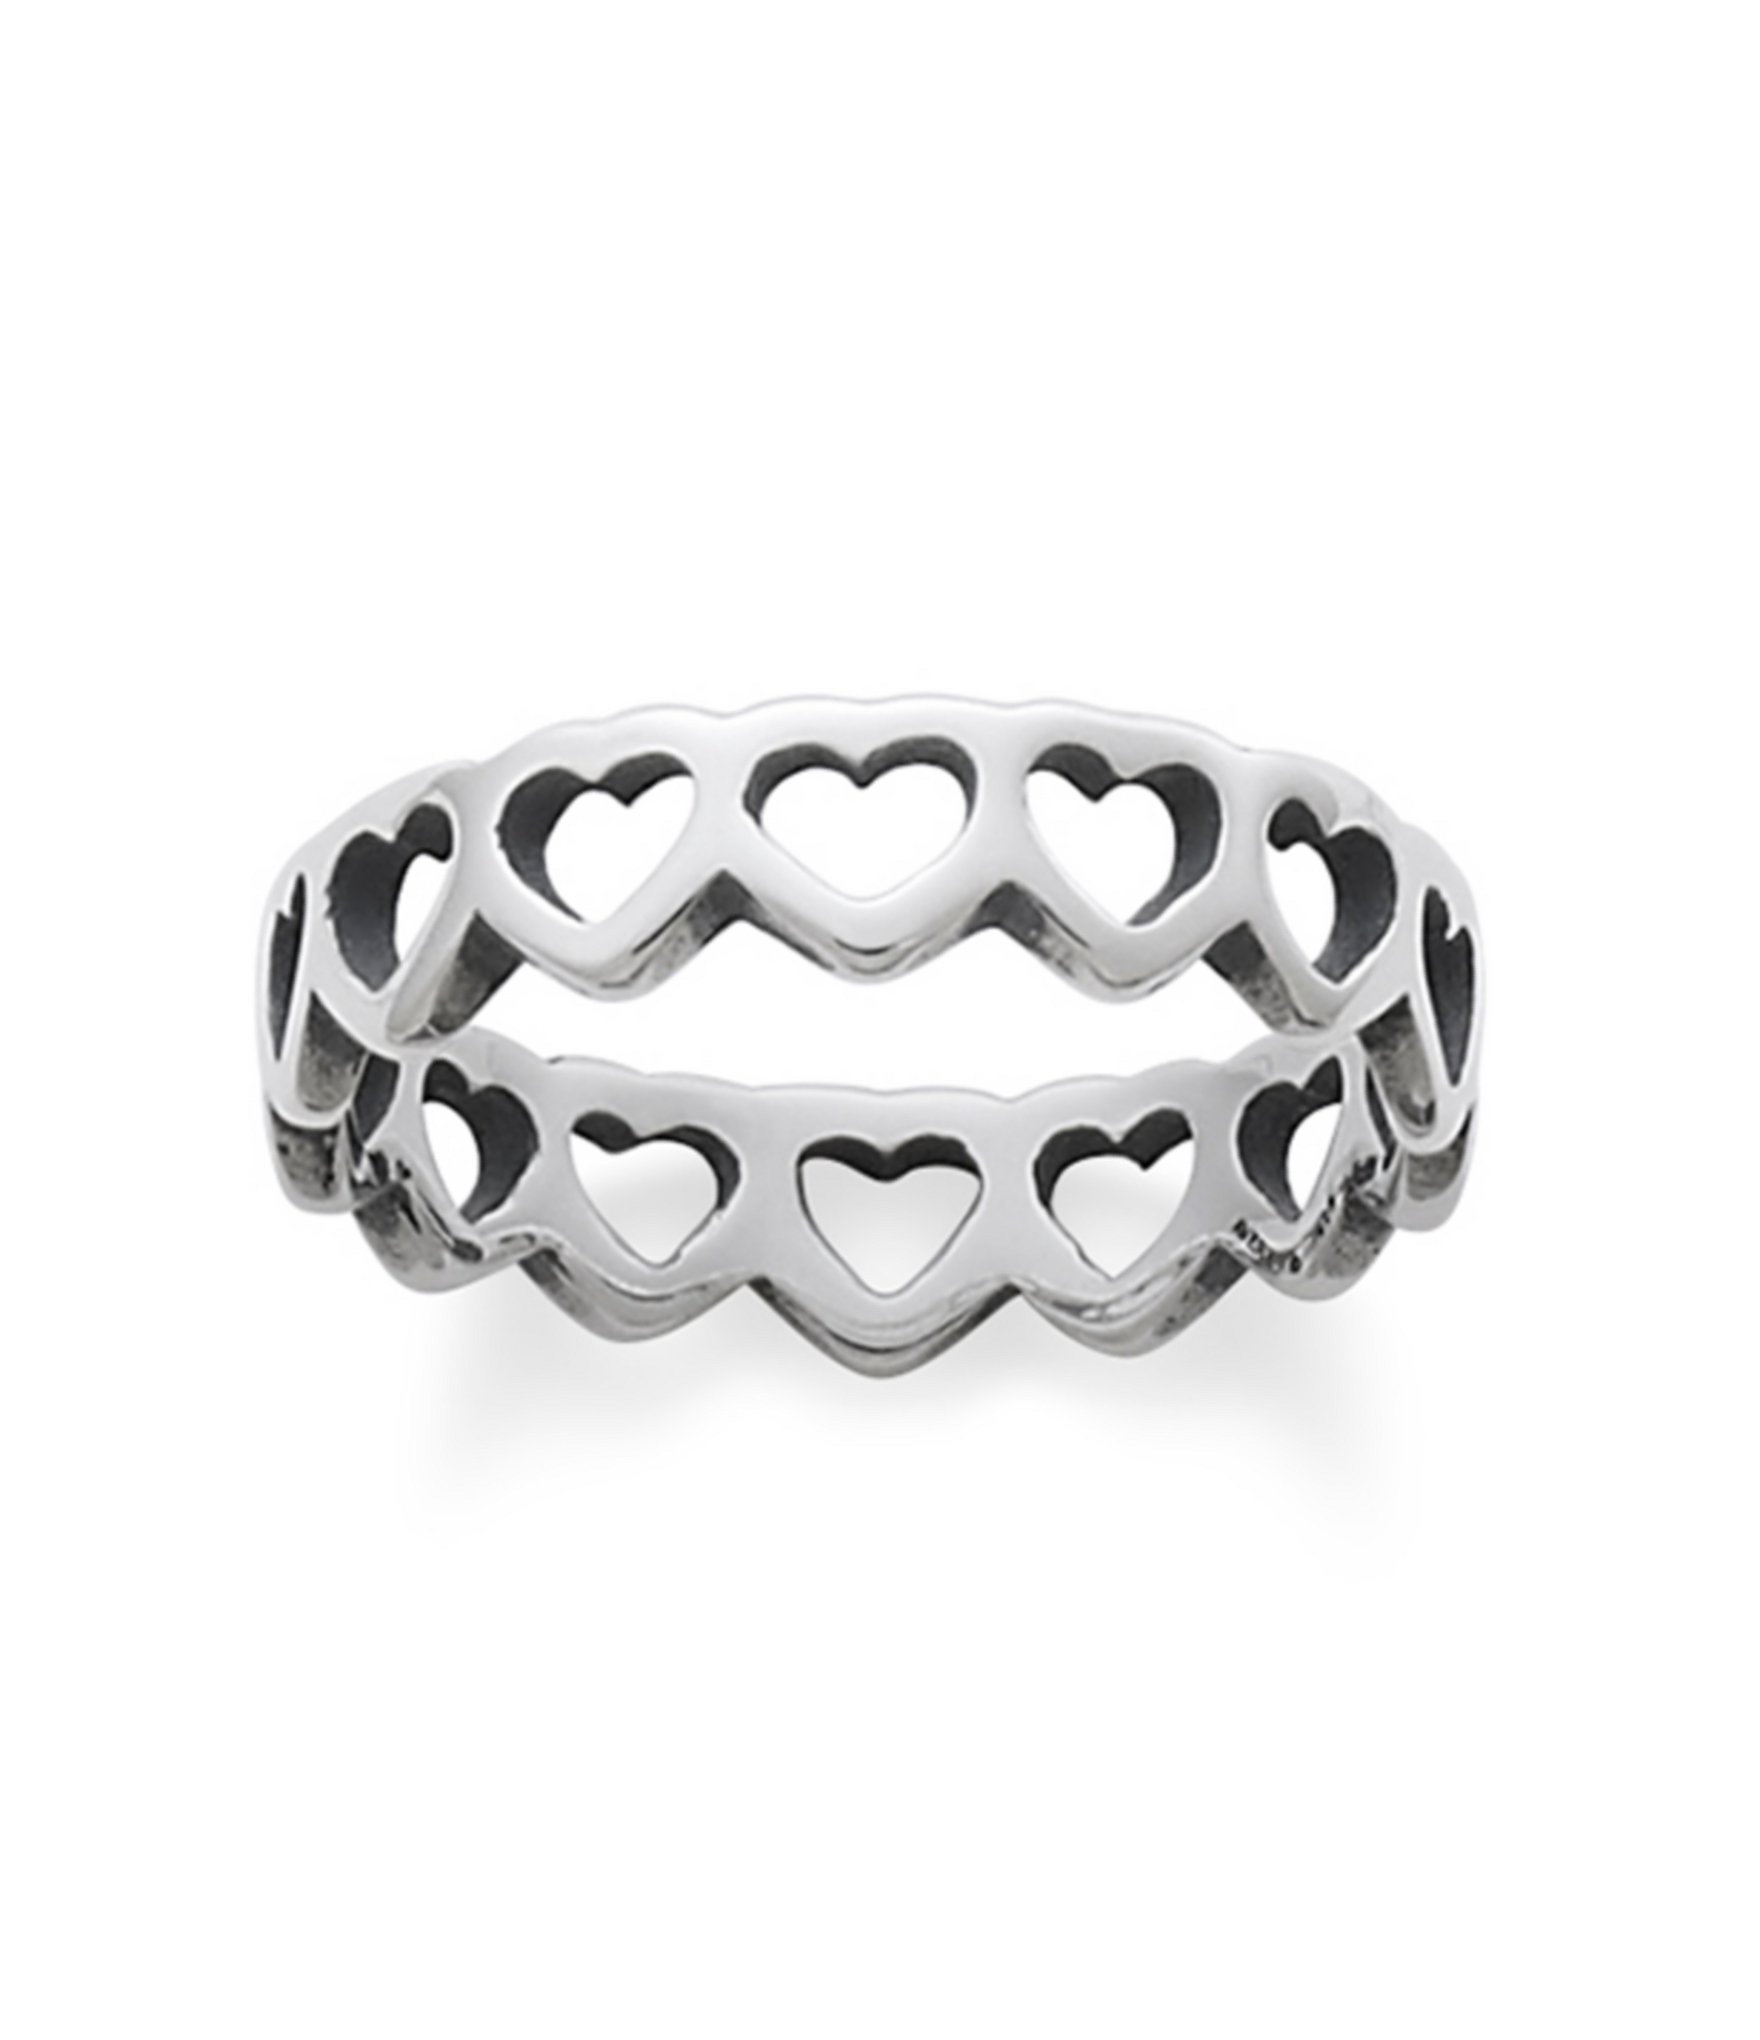 James Avery Tiny Hearts Band Ring | Dillard's Within 2018 Band Of Hearts Rings (View 6 of 25)